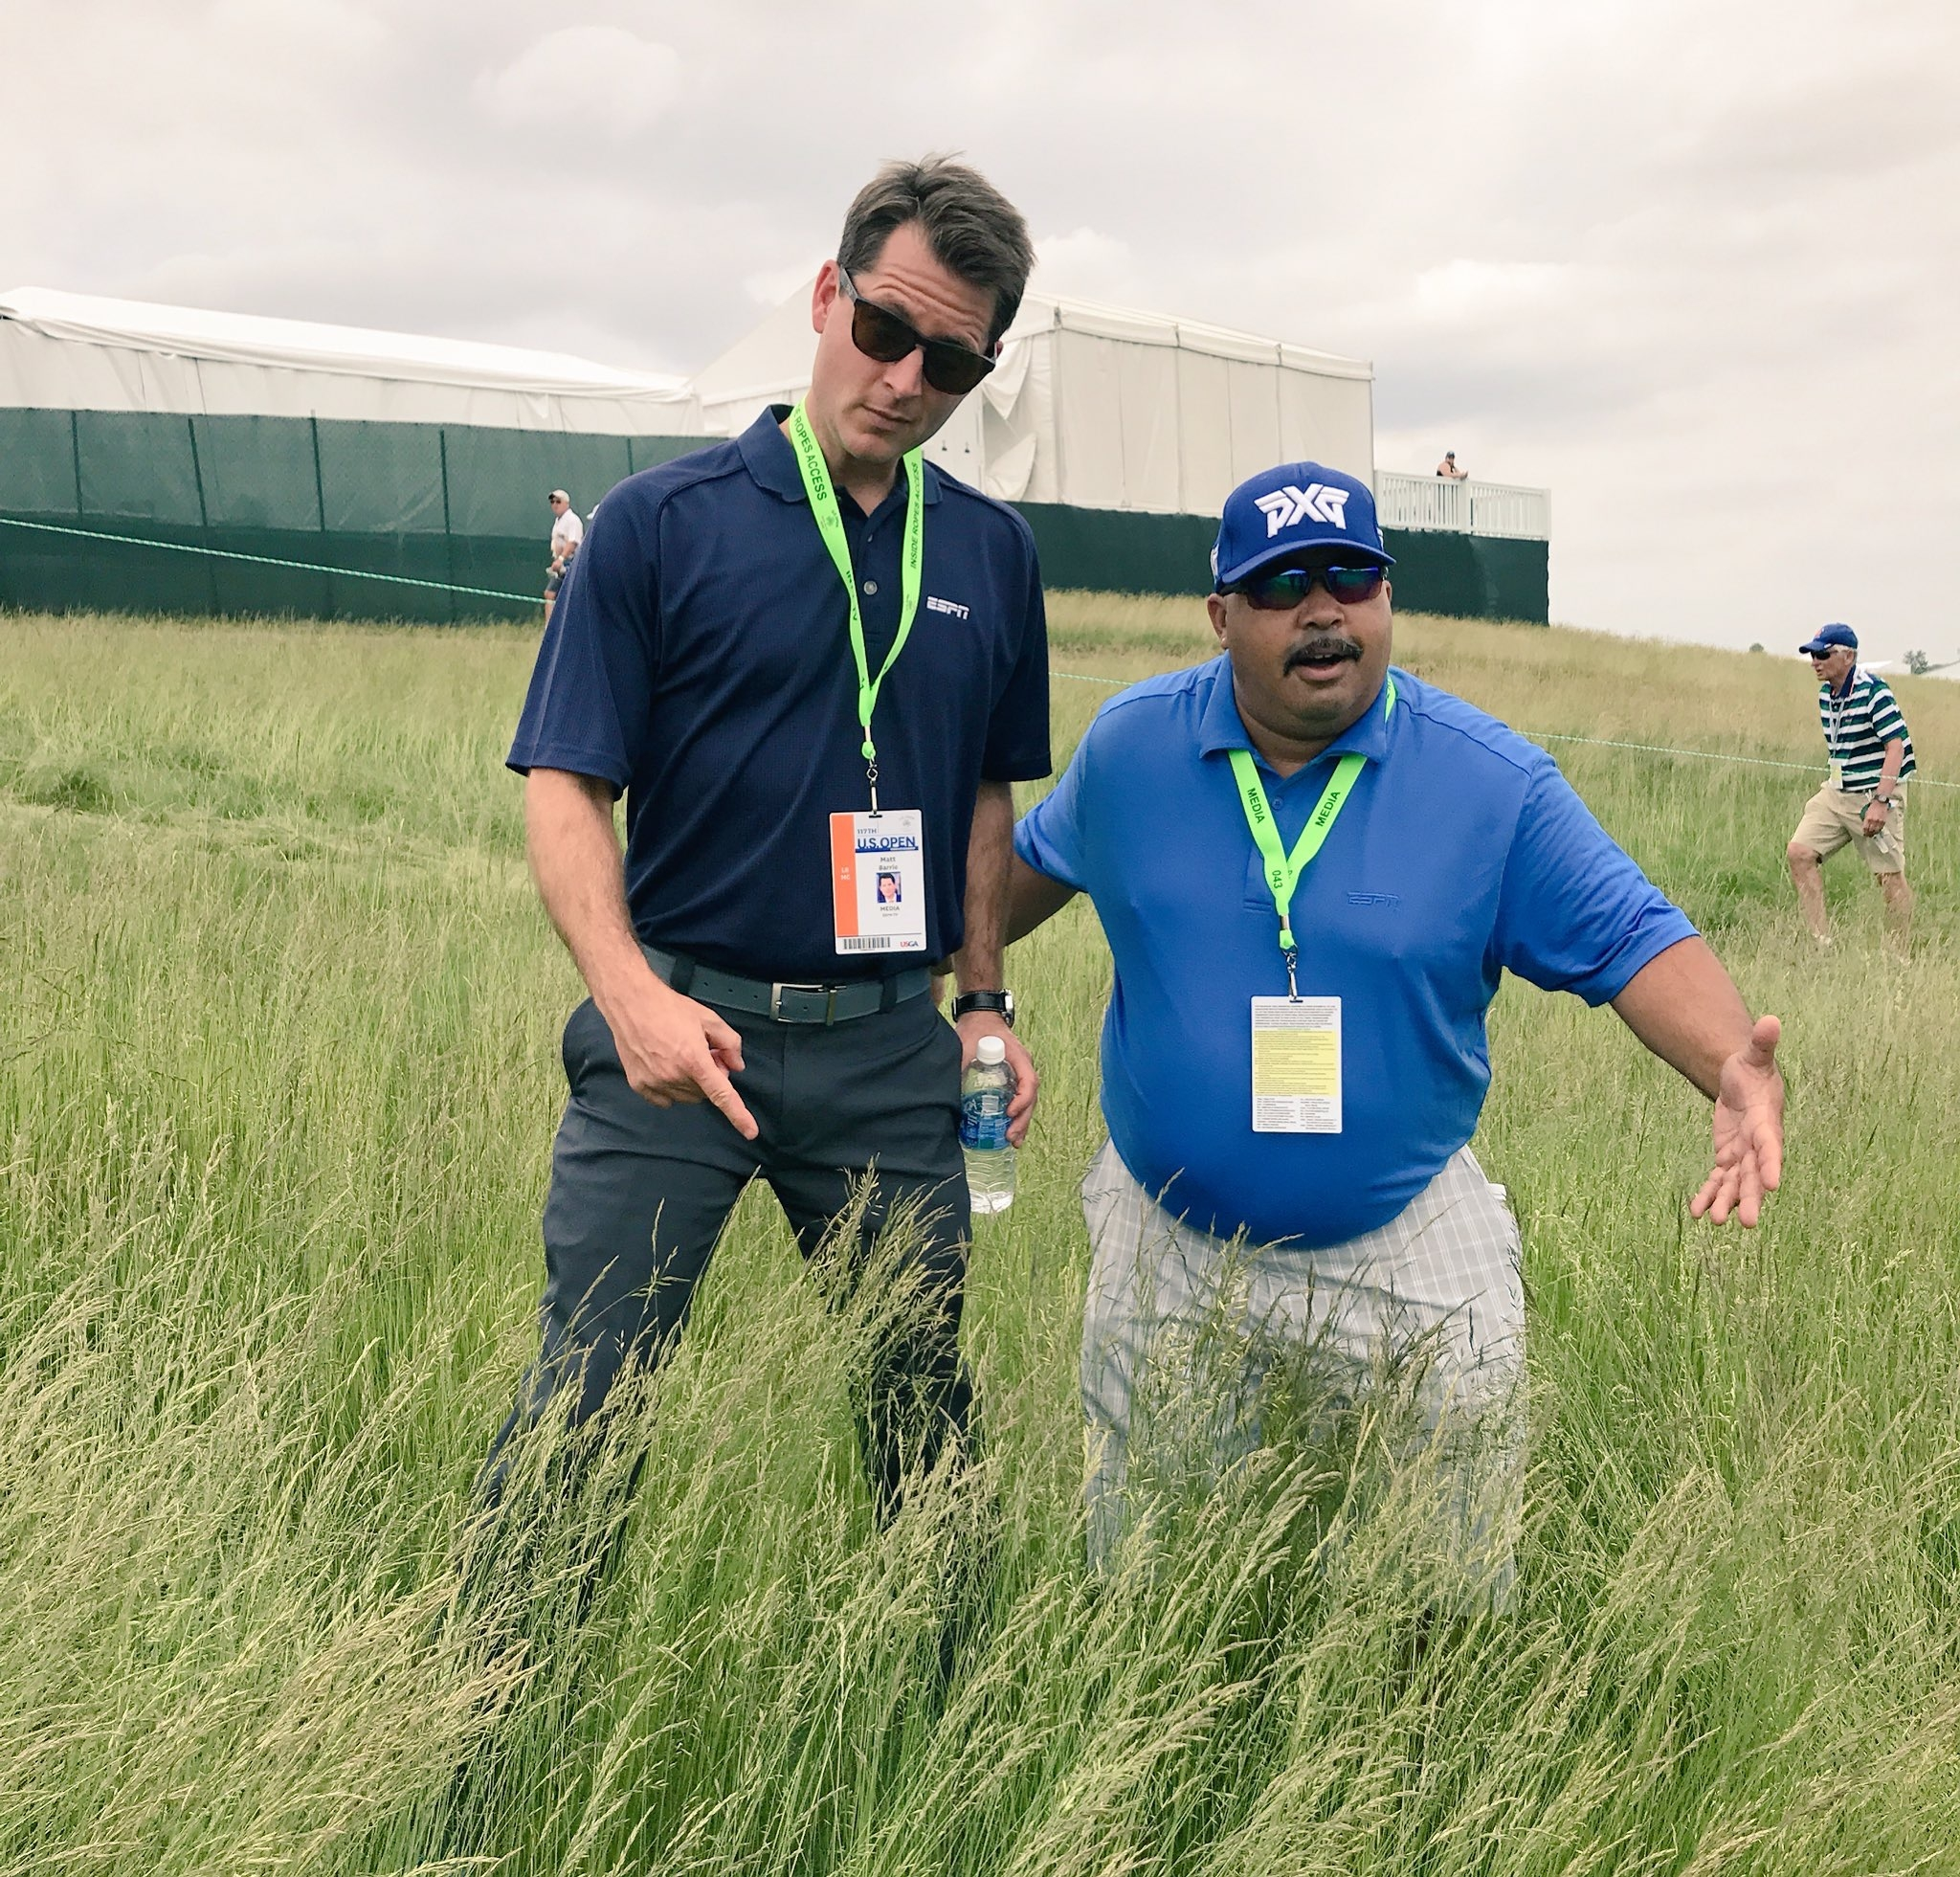 Photo of SportsCenter's Barrie relishes opportunity to cover his first U.S. Open